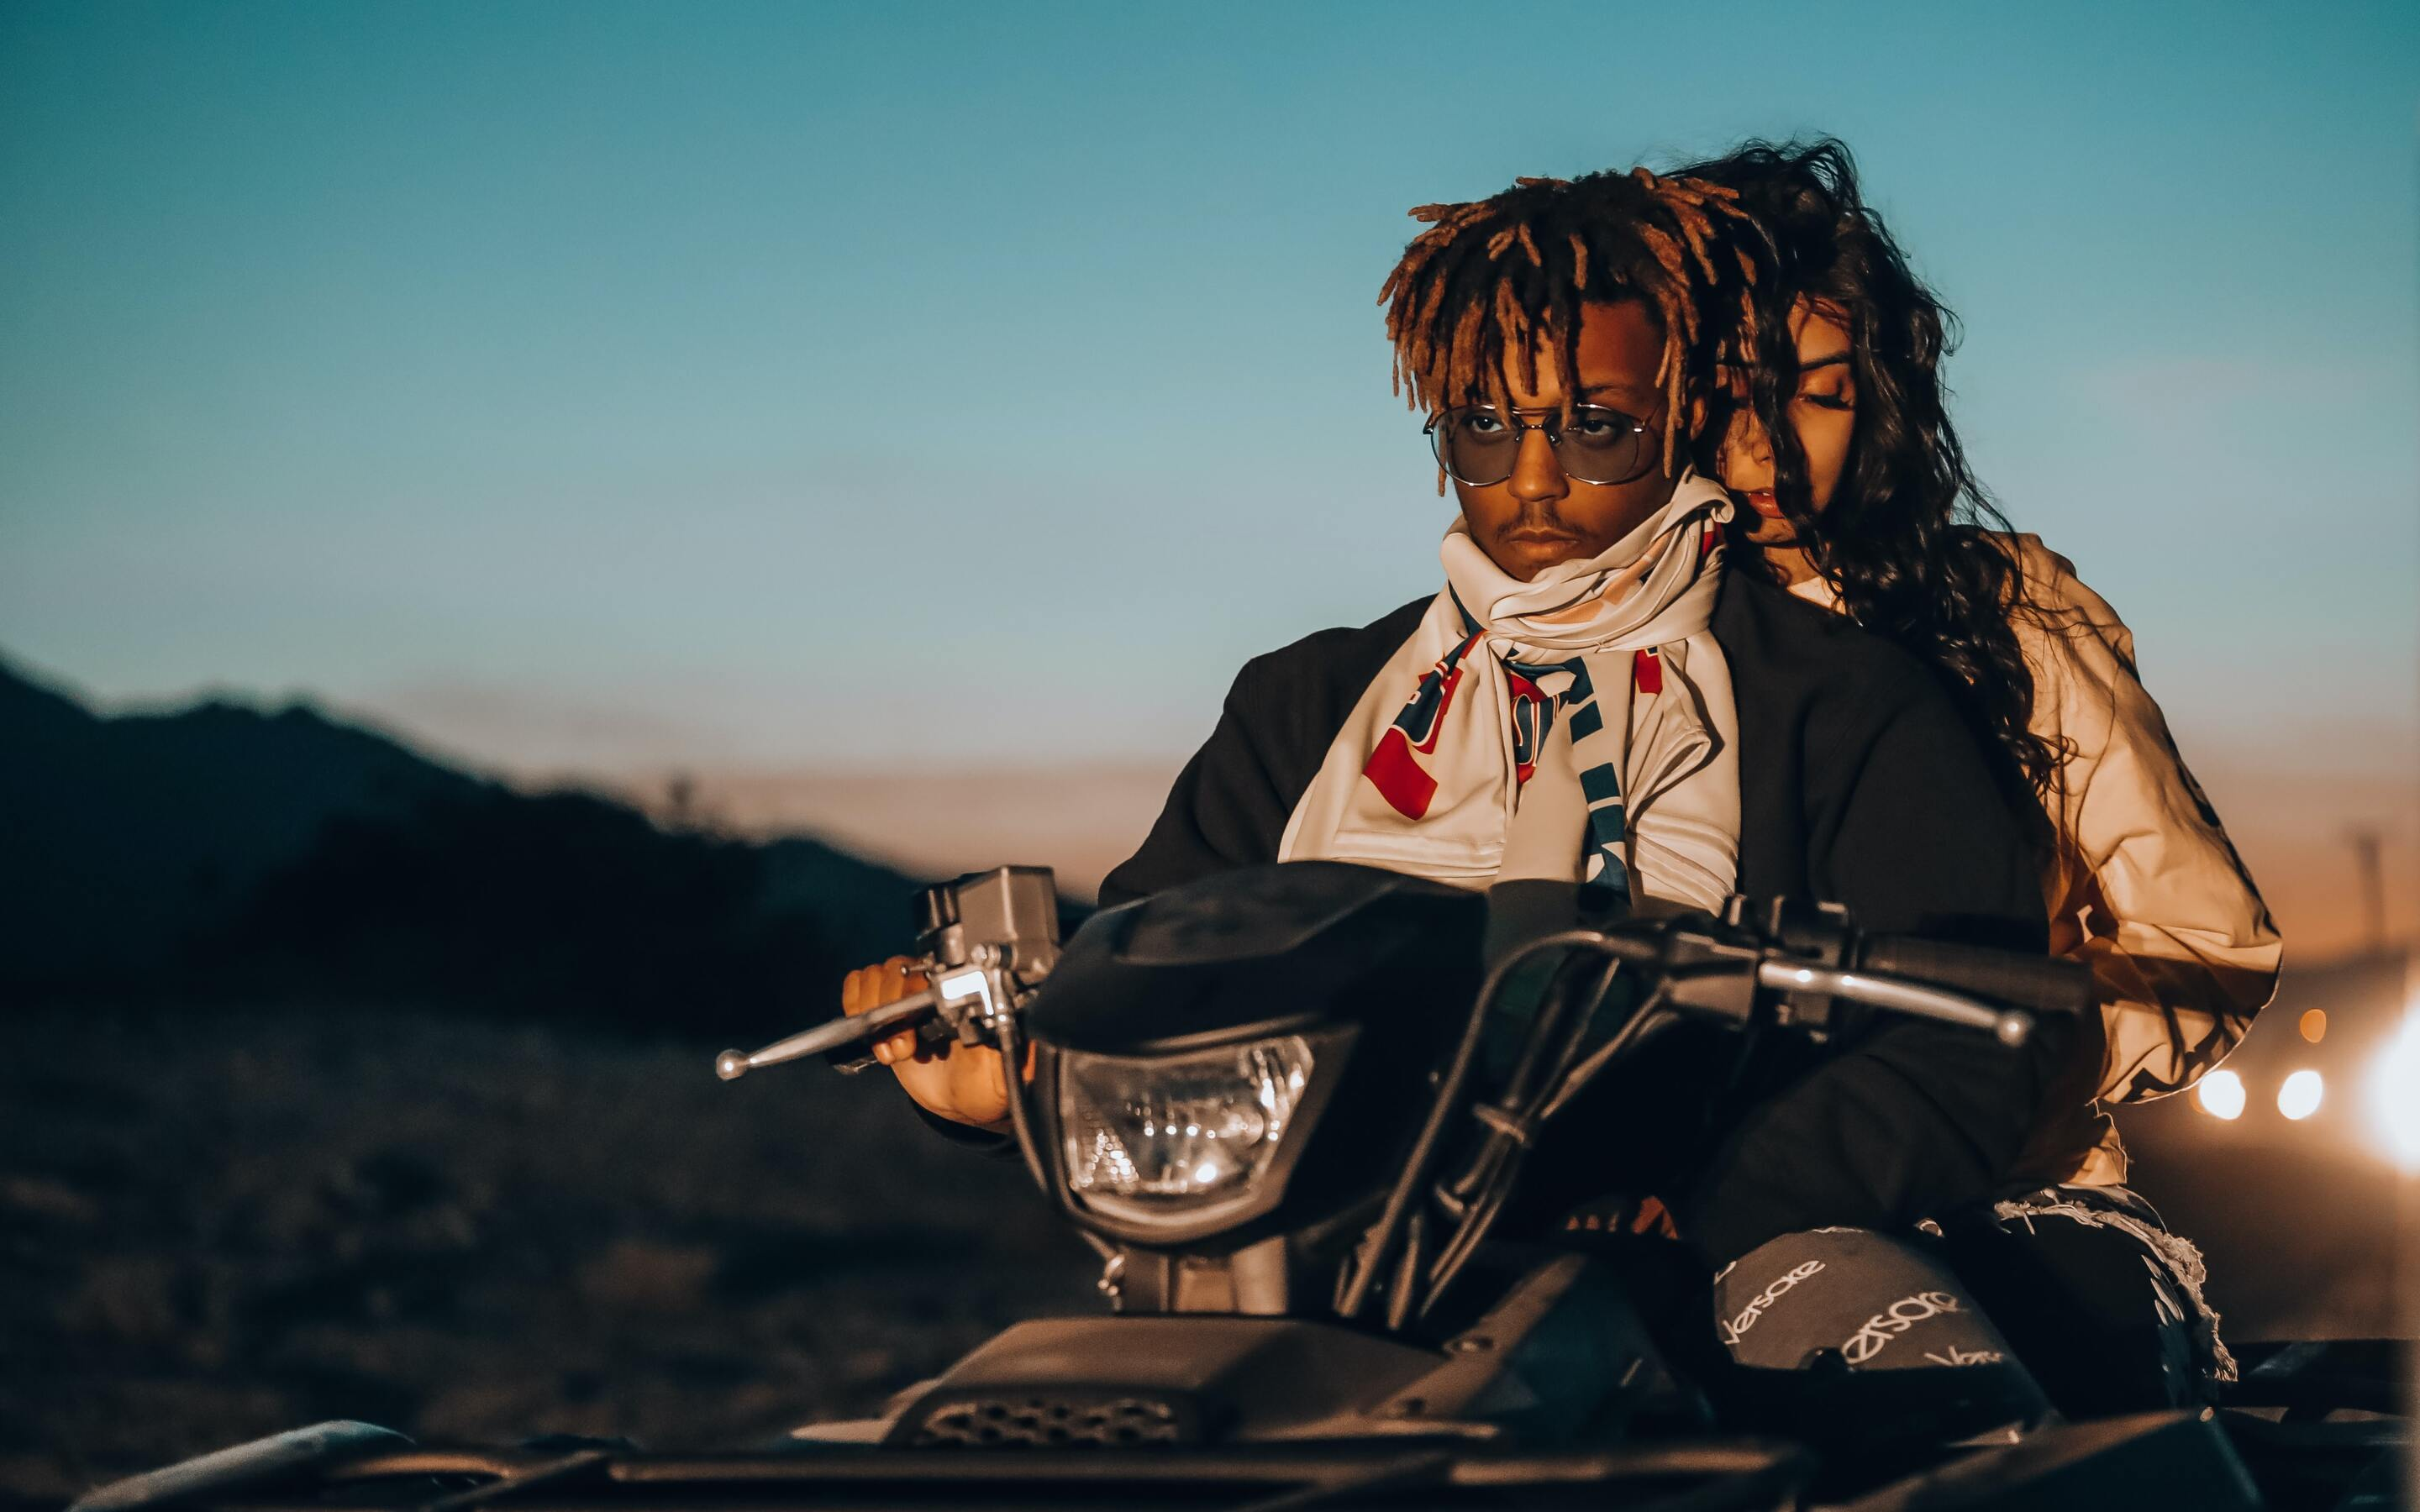 You can also upload and share your favorite juice wrld anime wallpapers. 2880x1800 Juice Wrld 5k Macbook Pro Retina HD 4k ...